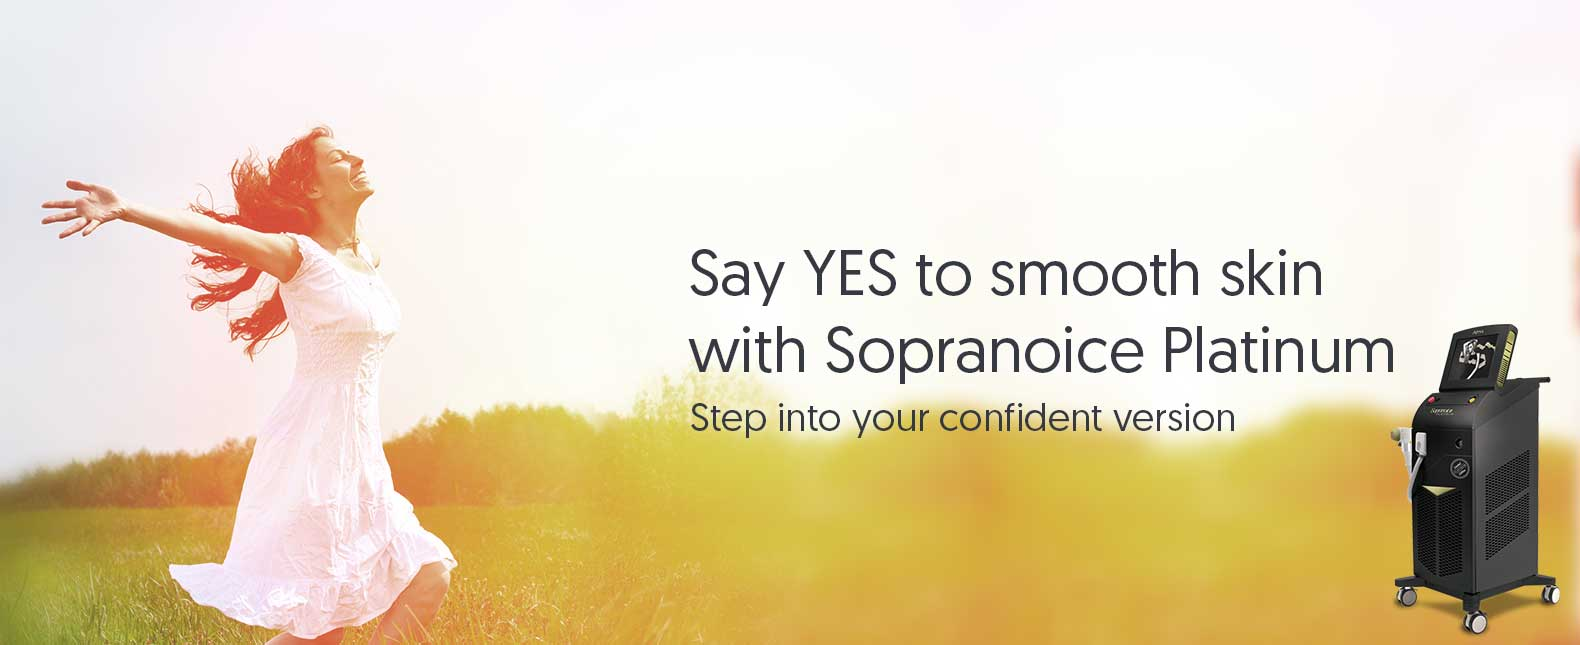 Say YES to Smooth Skin with Sopranoice Platinum